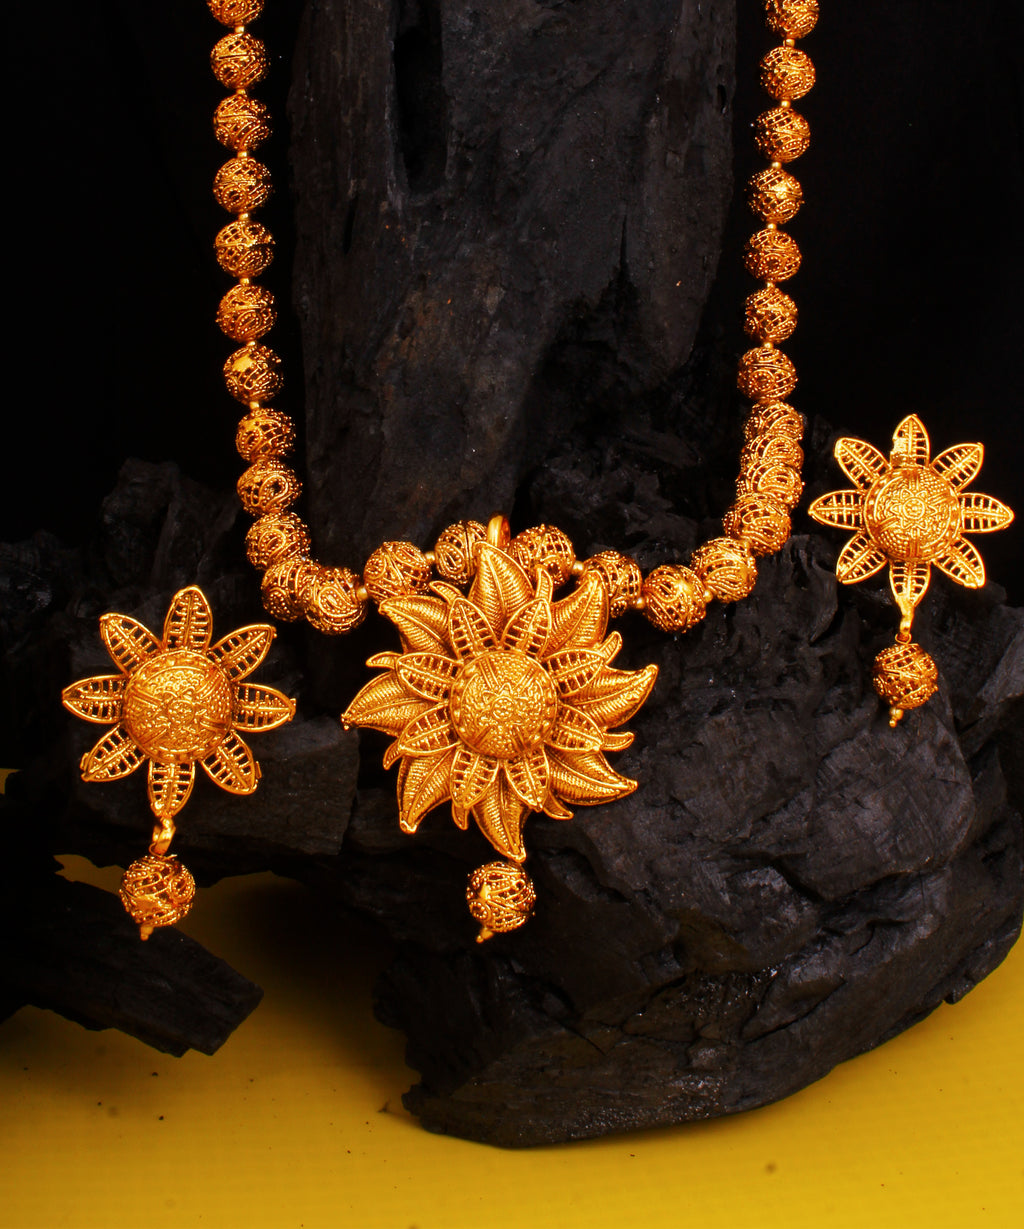 Golden Sunflower Chain